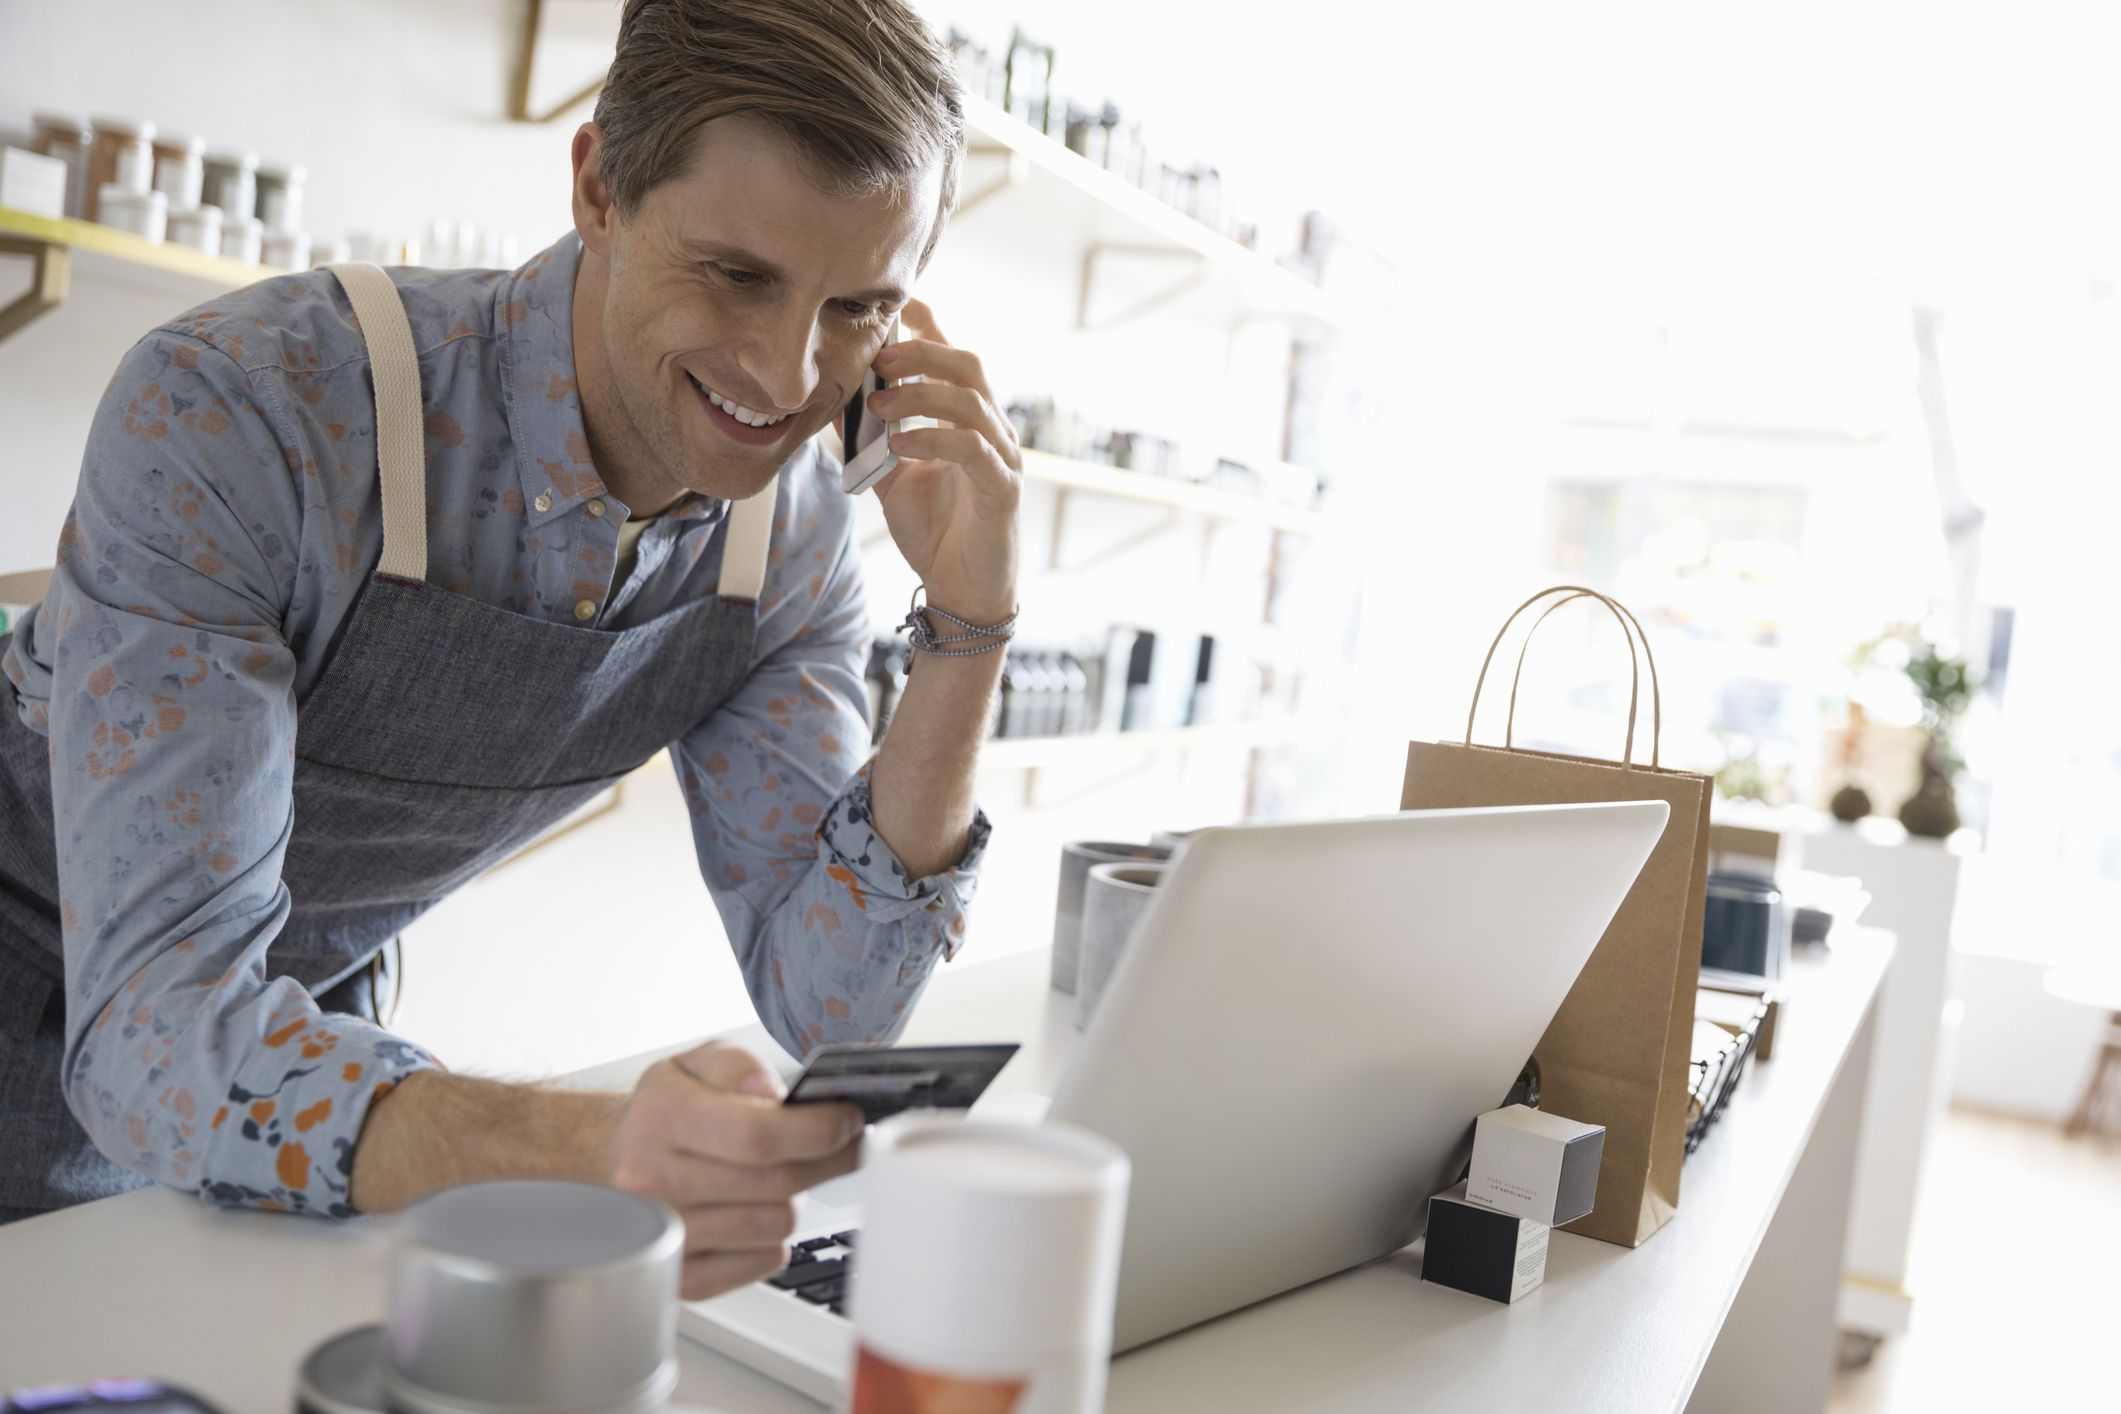 The 7 Best Credit Cards For Small Business Owners Of 2019